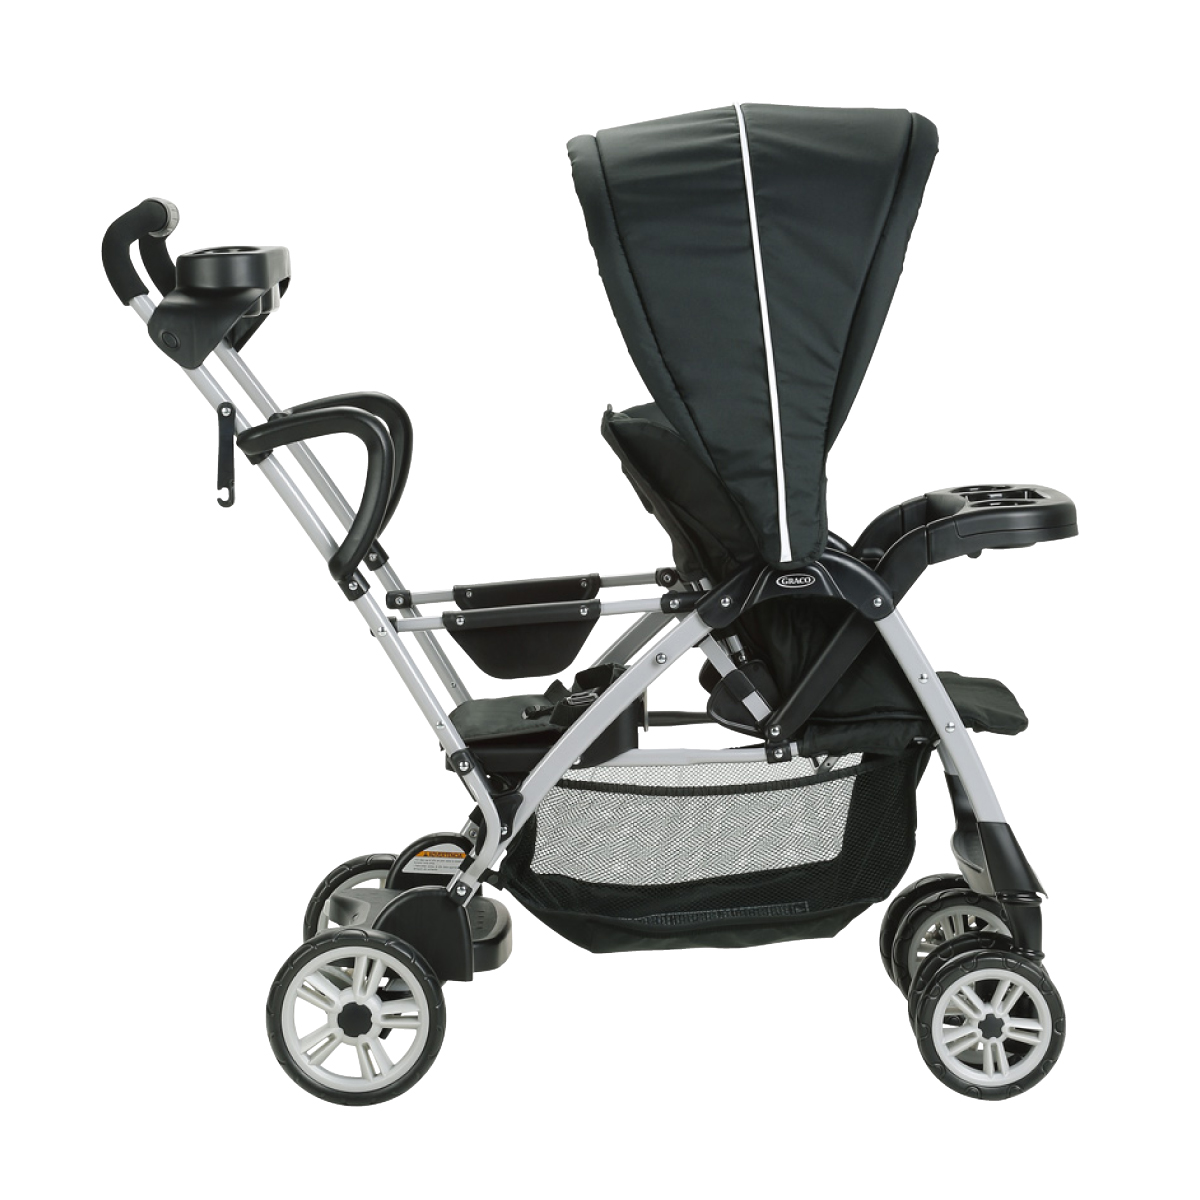 Room_for2_7AF12RNL-graco-roomfor2-travel-system-angle-2